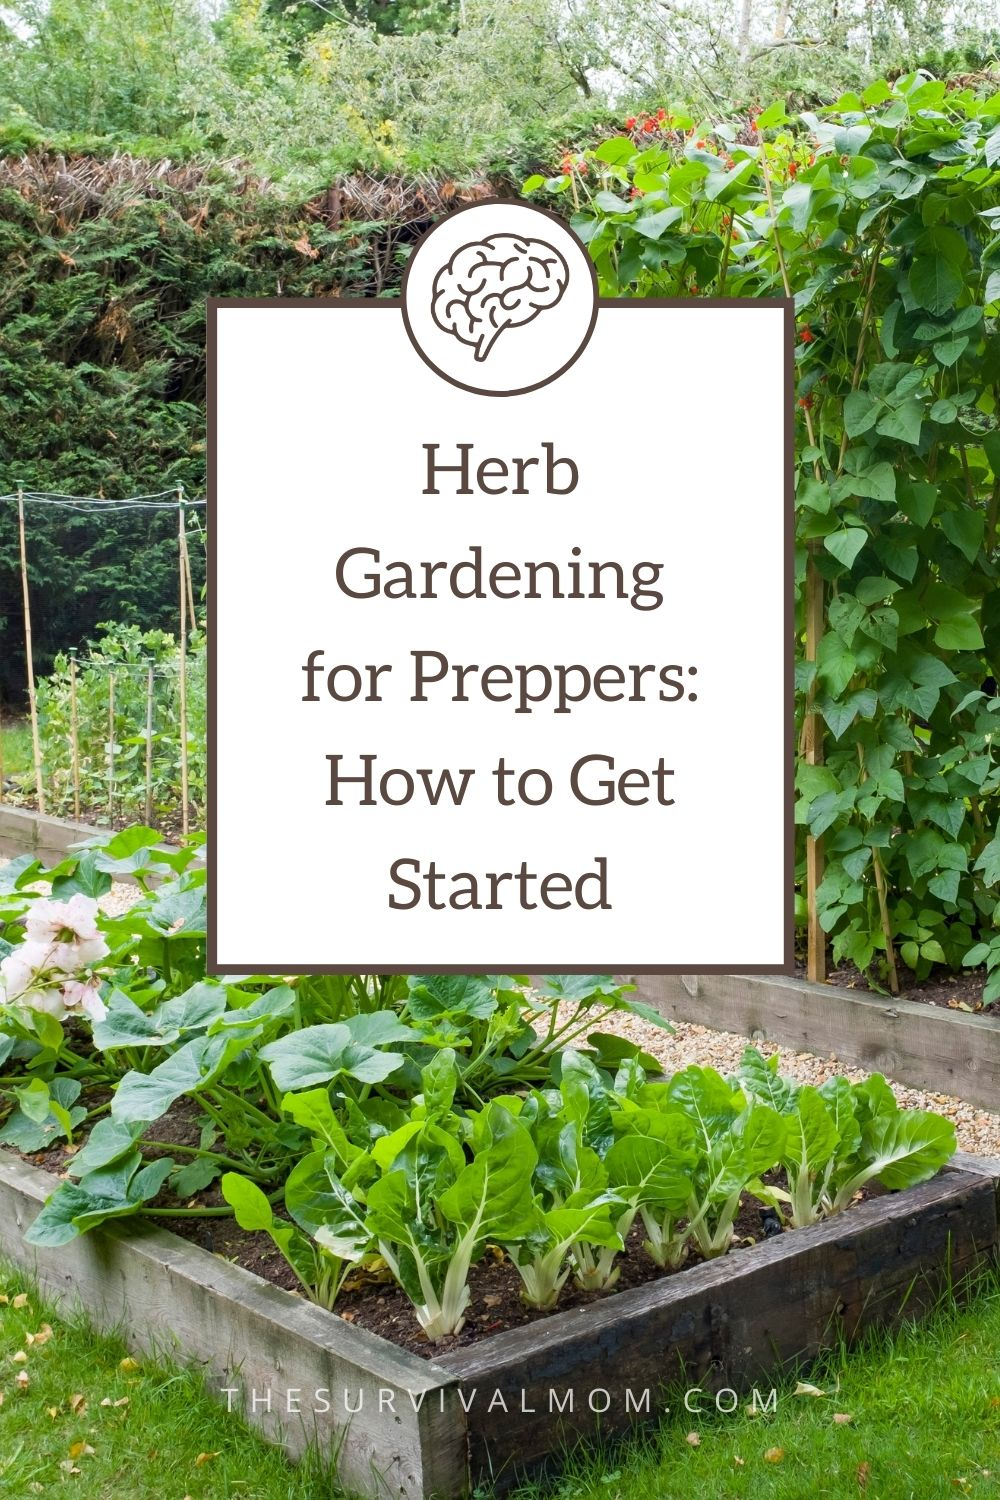 Herb Gardening for Preppers How to Get Started via The Survival Mom